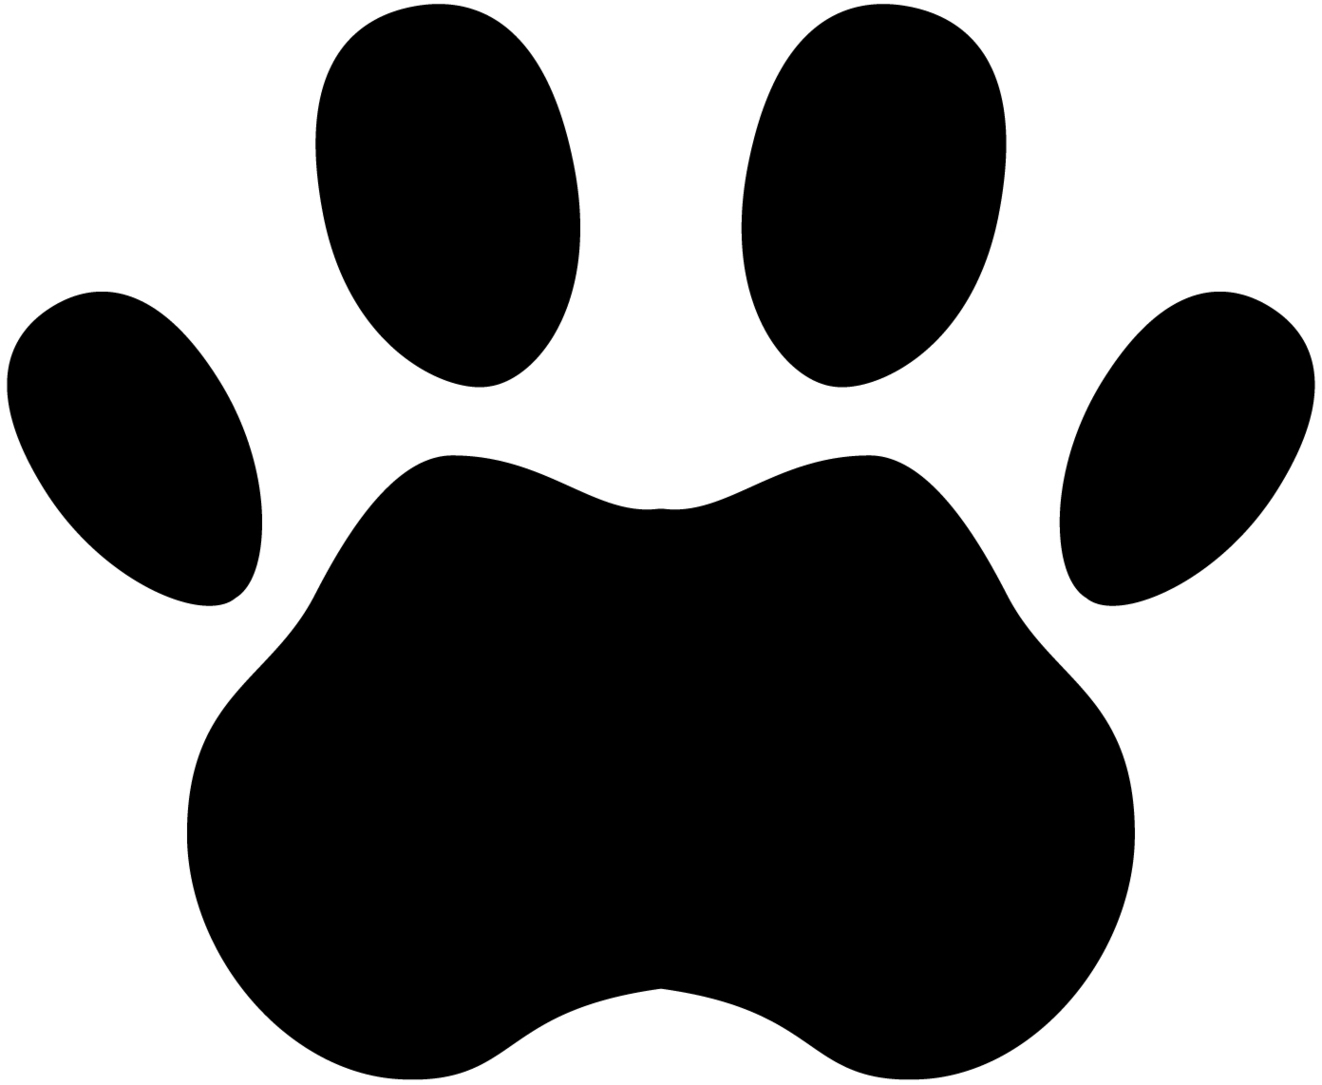 1322x1085 Dog Paw Prints Paw Prints Dog Paw Print Clip Art Free Download 3